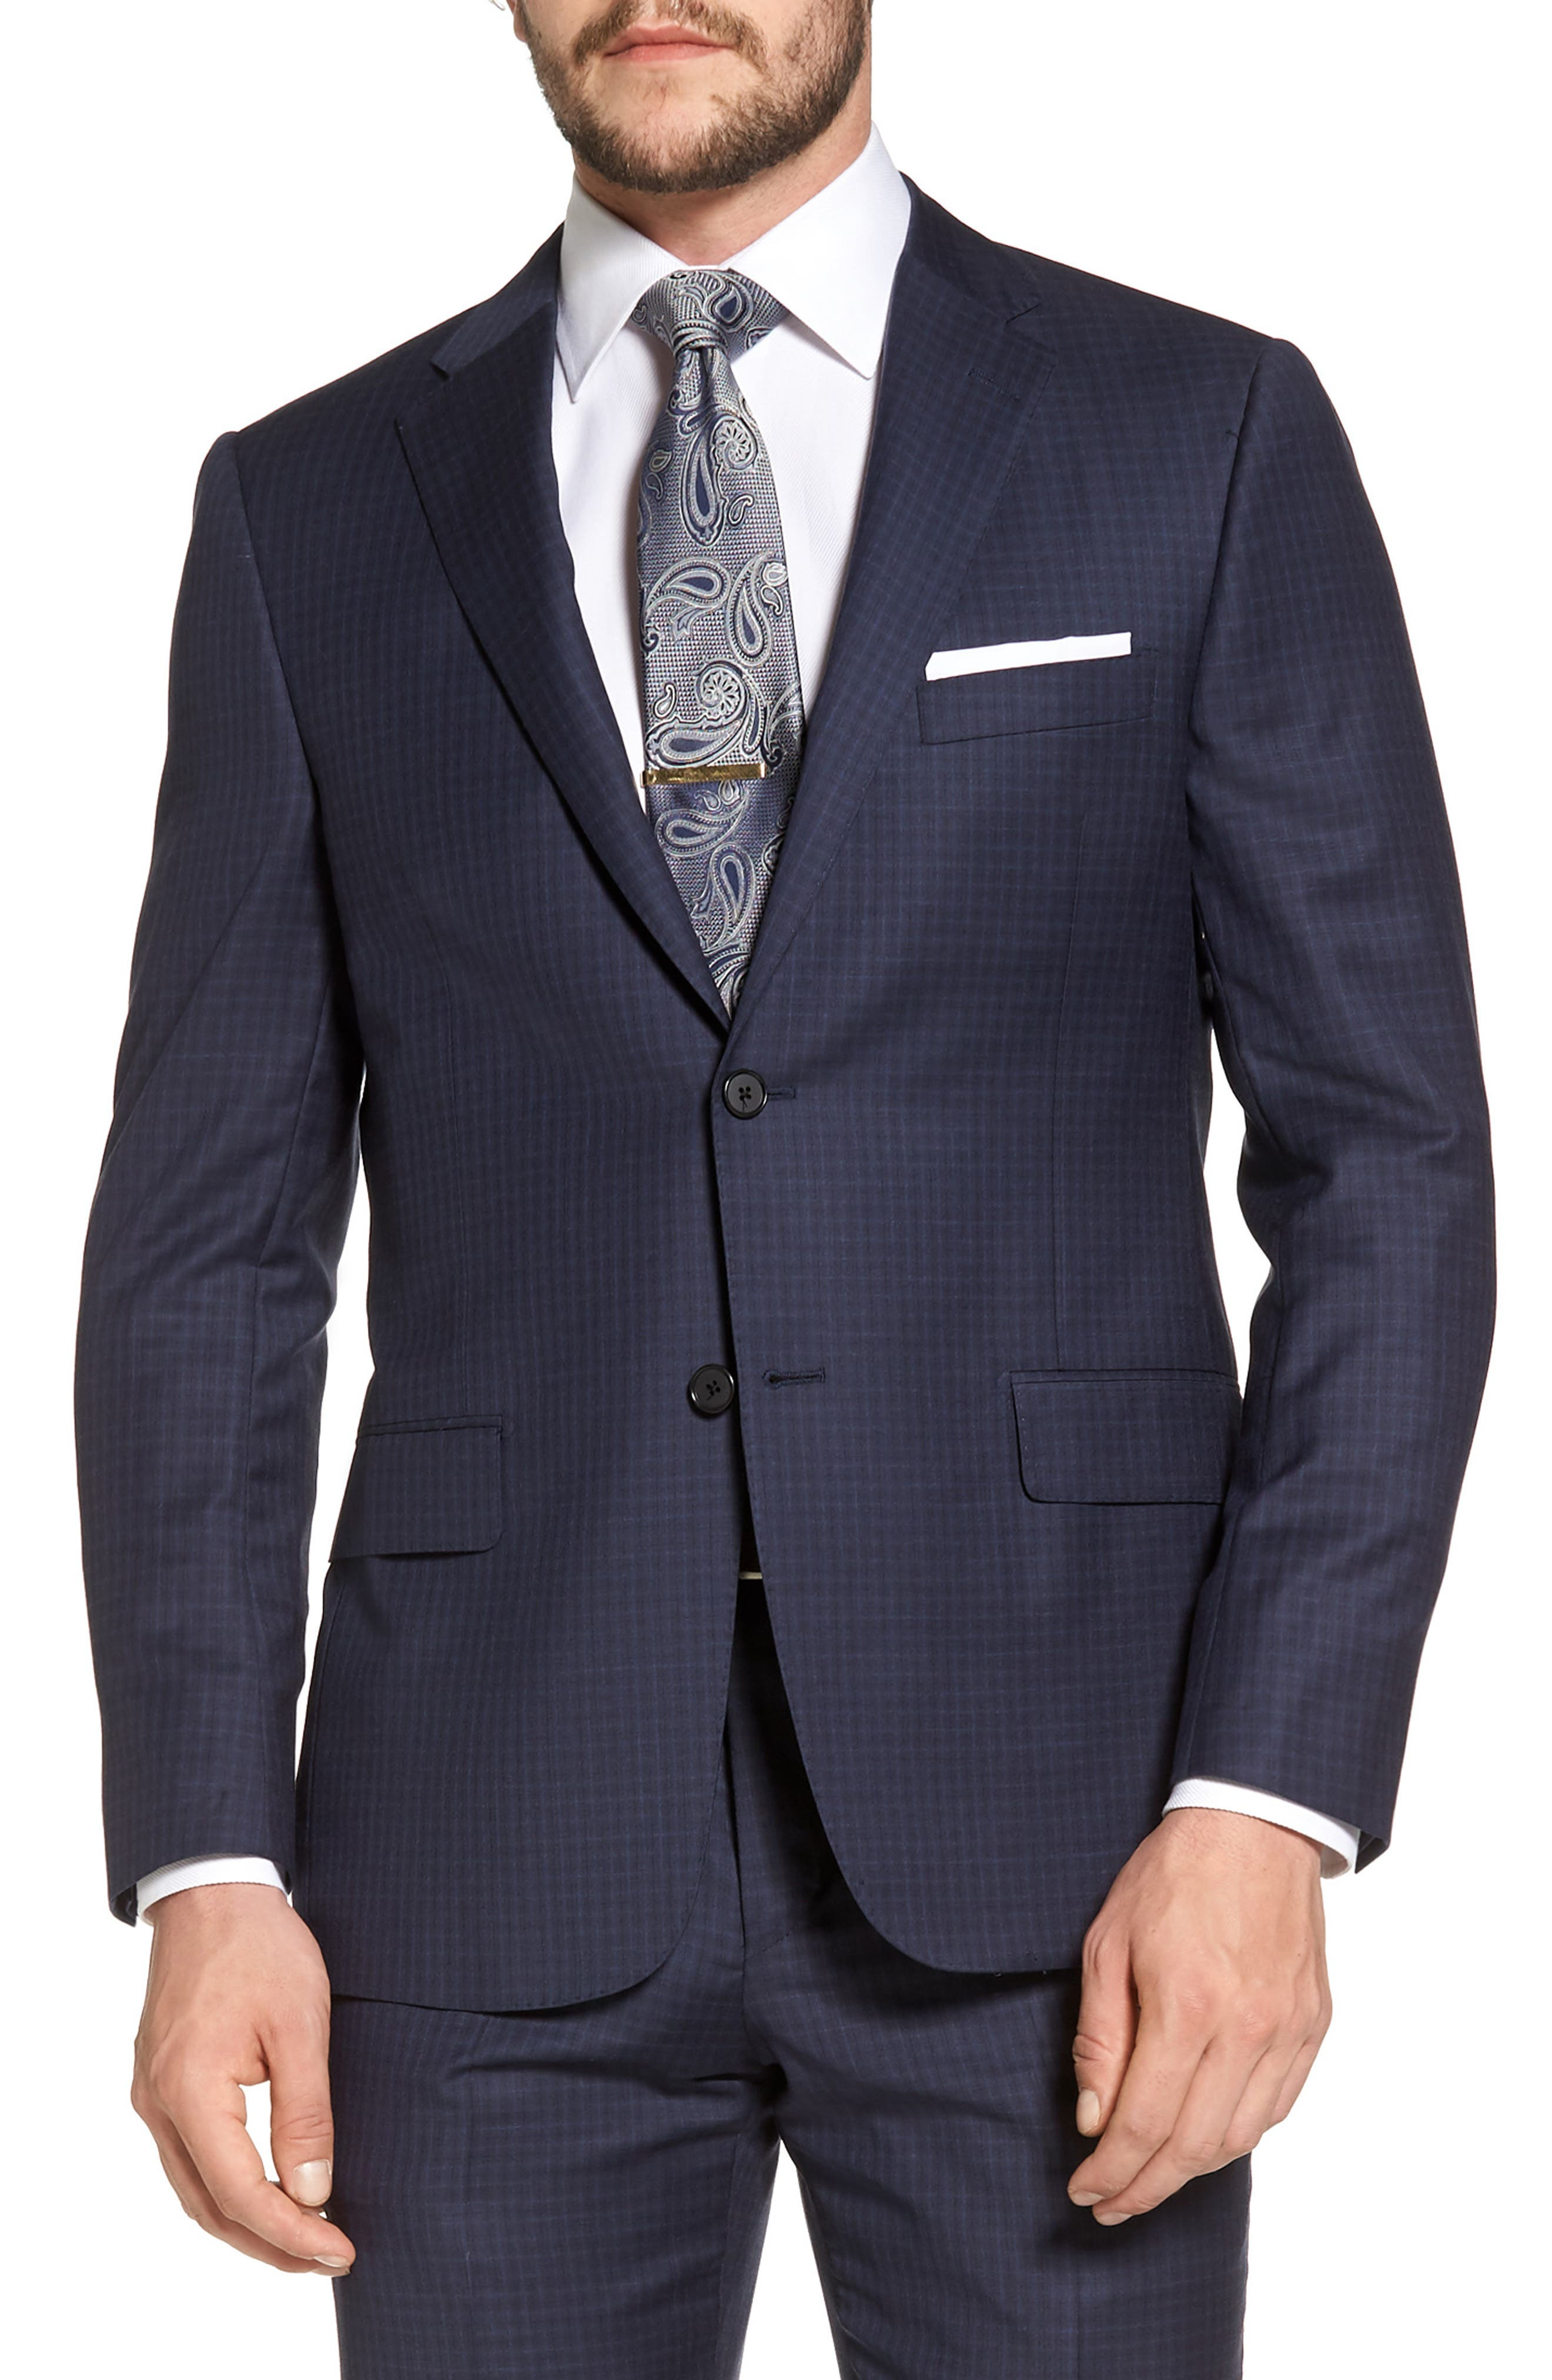 HICKEY FREEMAN,                             Classic B Fit Check Wool Suit,                             Alternate thumbnail 5, color,                             410